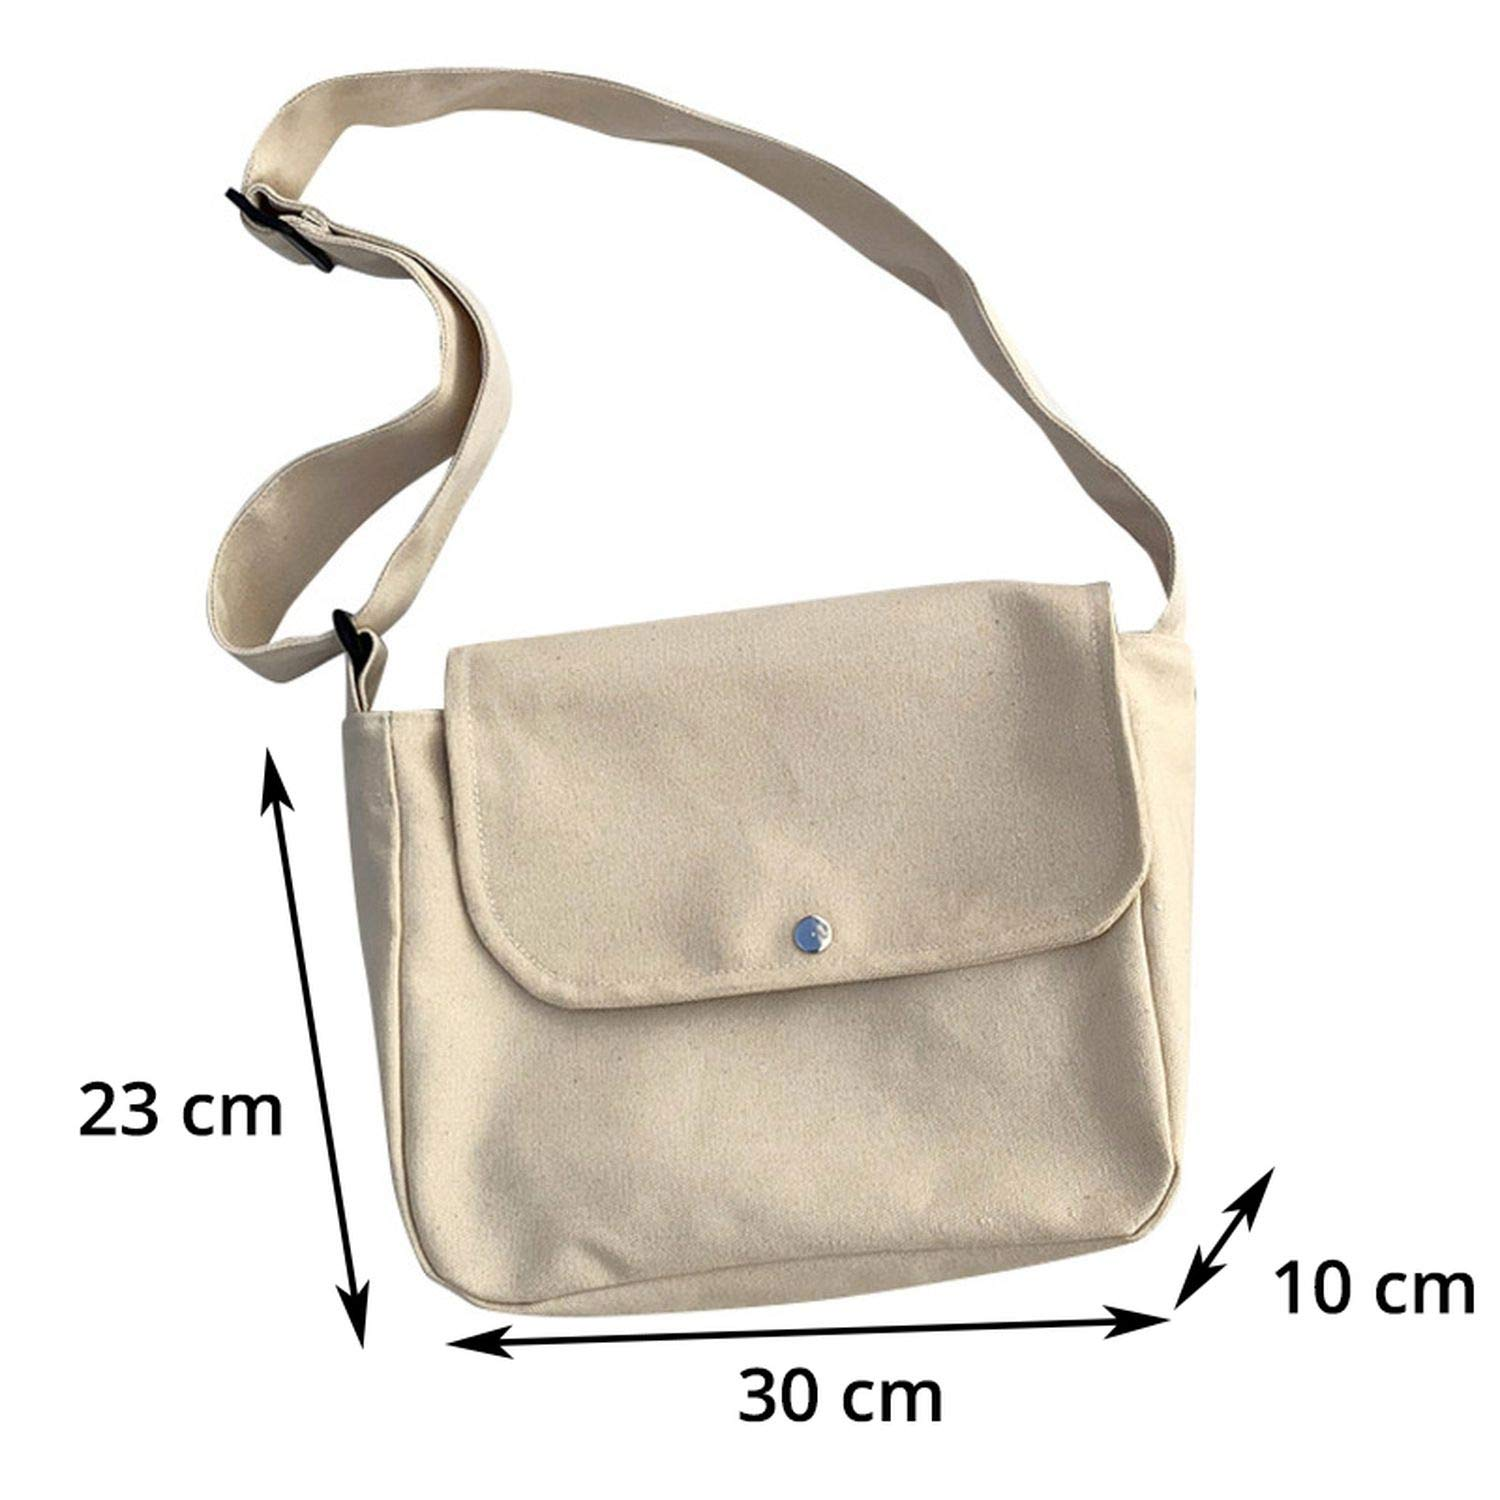 Messenger Bag Canvas Crossbody Bags Shoulder Bags Designer Handbagss Muje-In Top